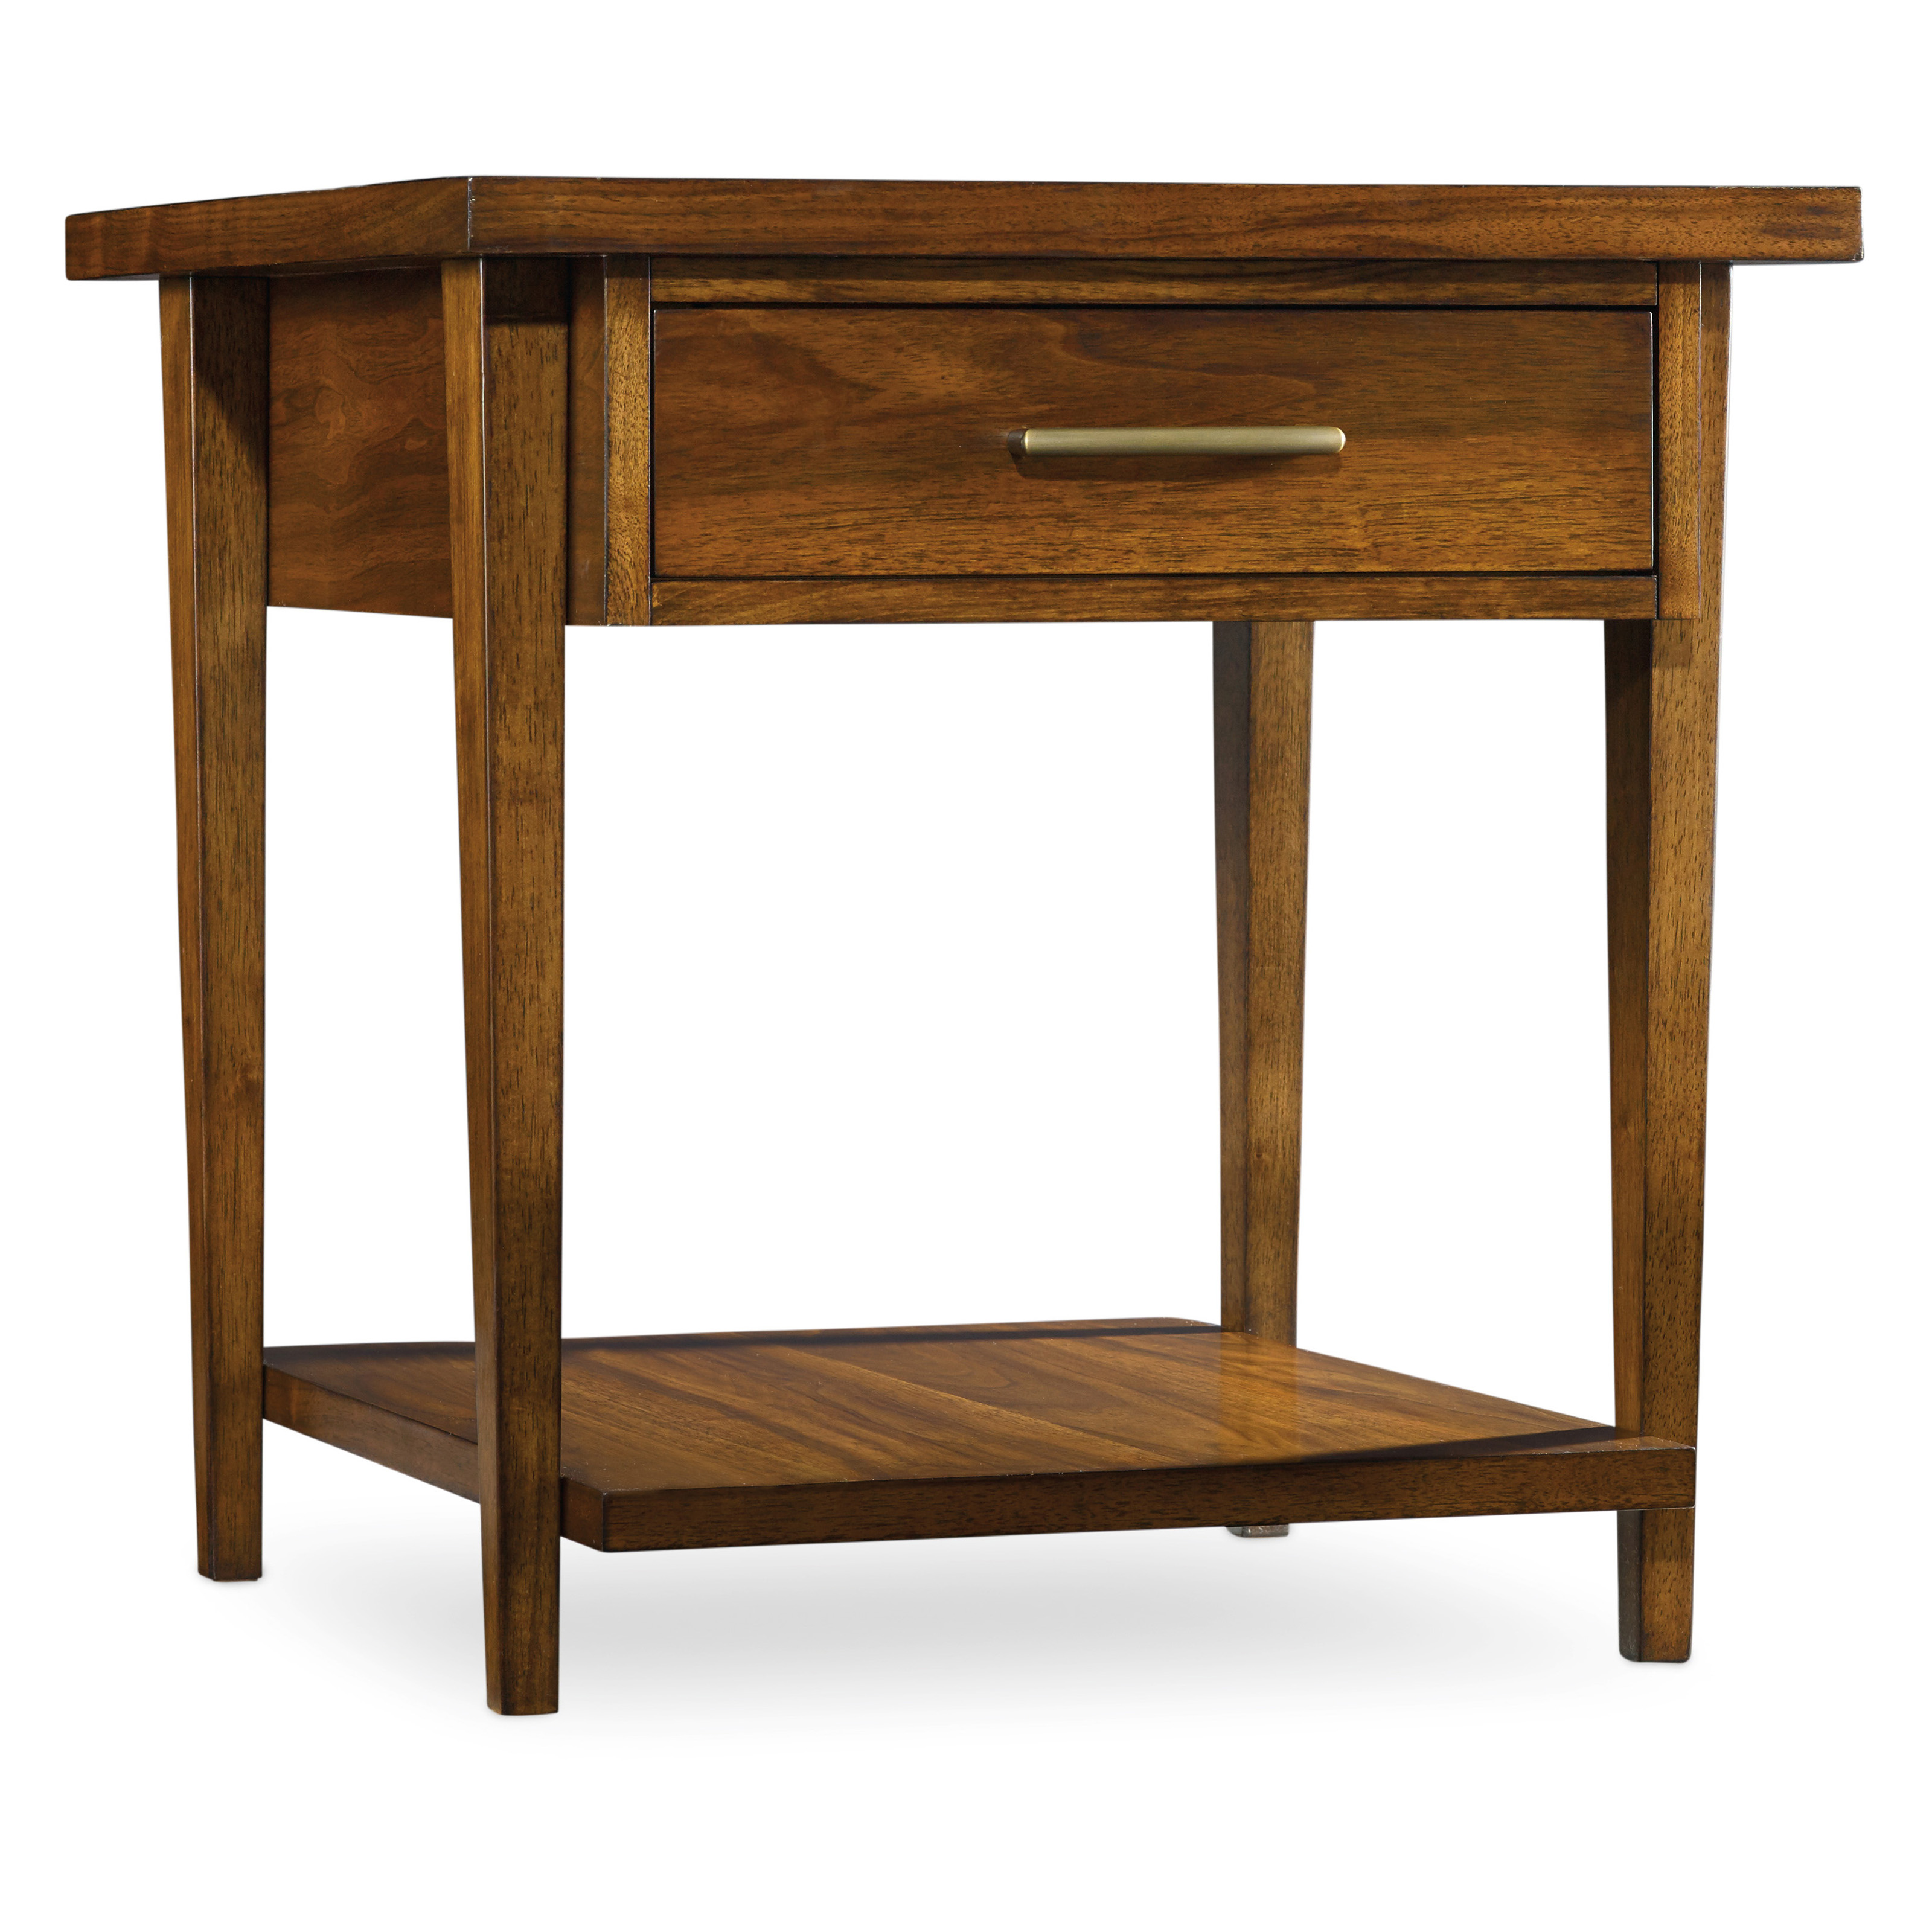 Hooker furniture viewpoint desk hayneedle amipublicfo Choice Image